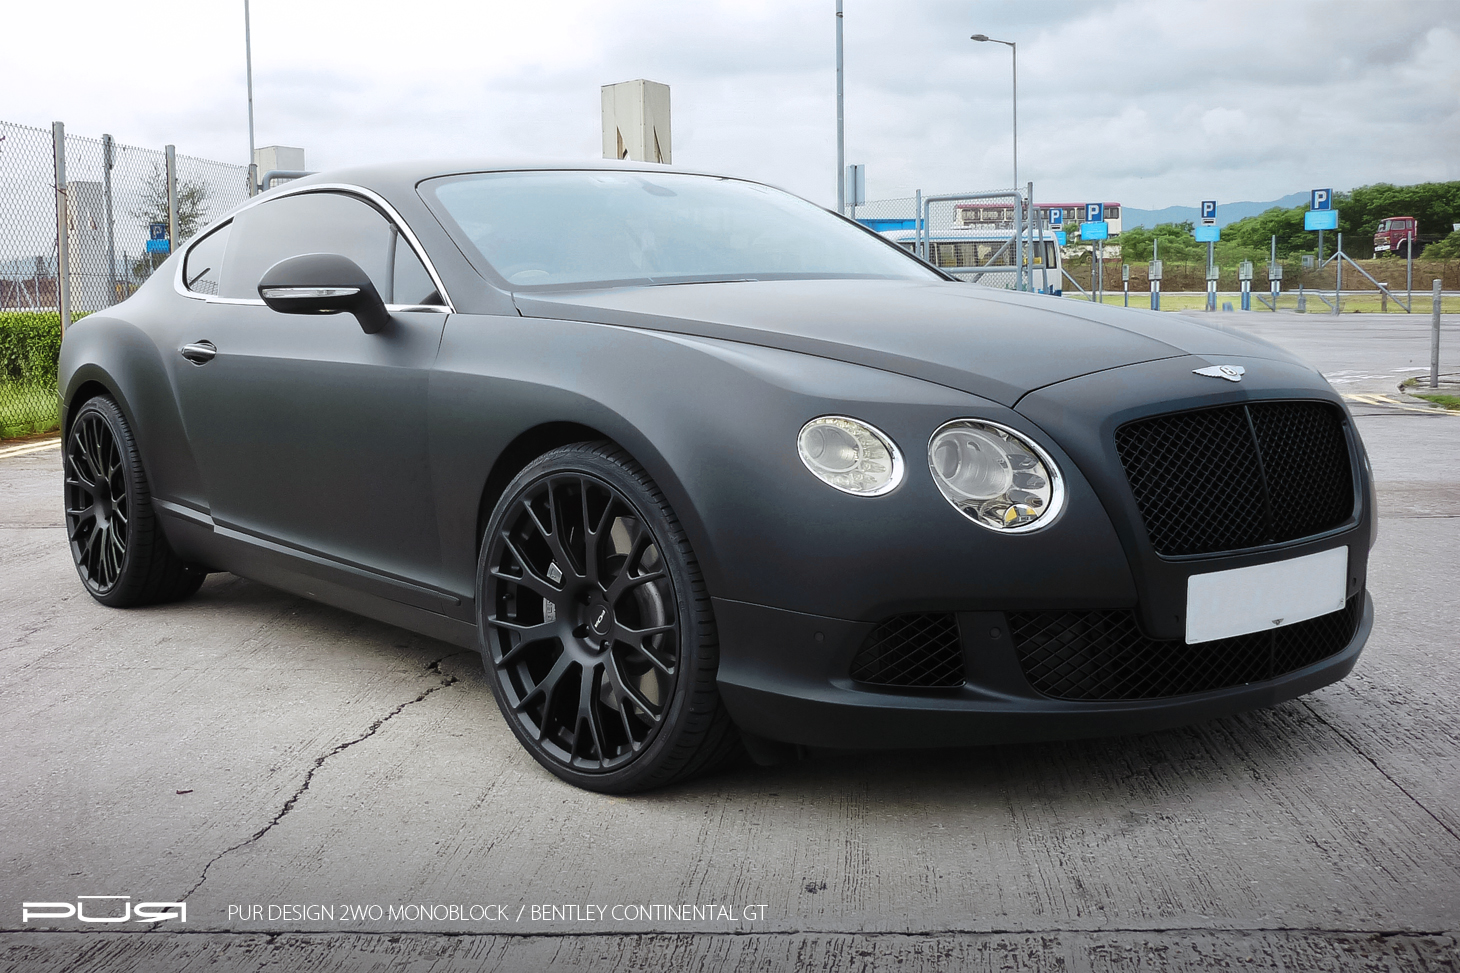 Bentley Continental Gtugg Stovle